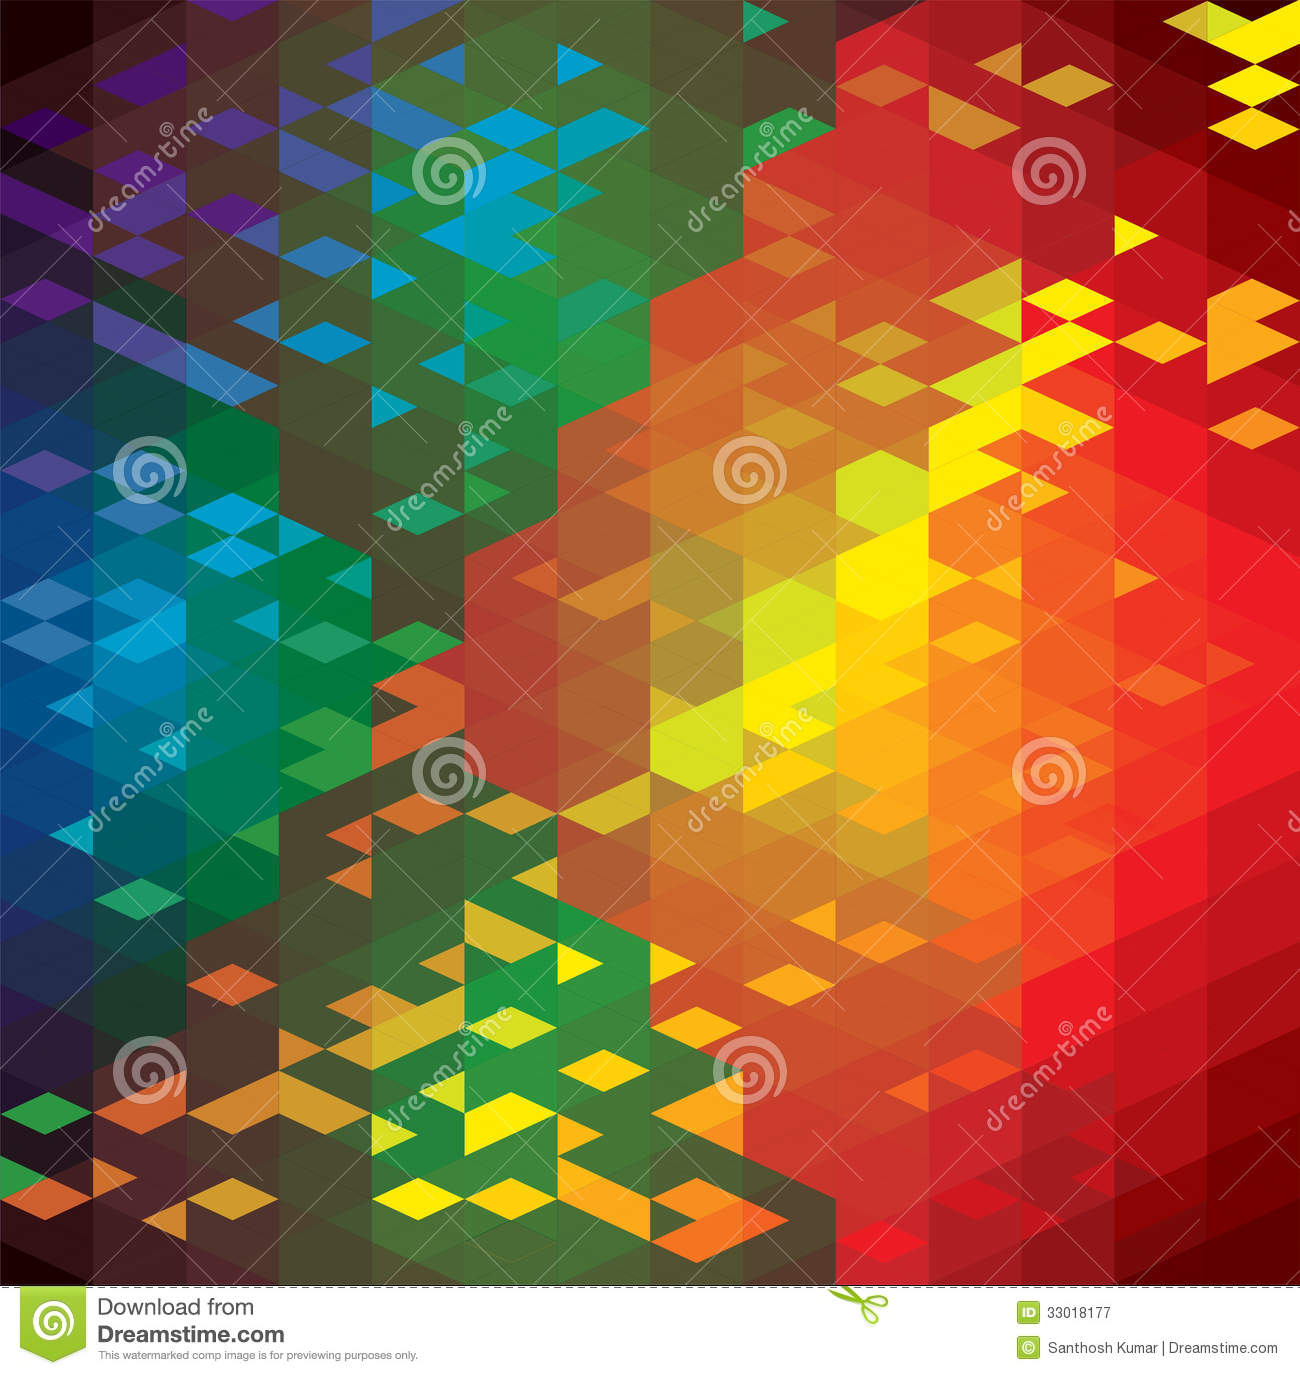 colorful shapes background created - photo #28